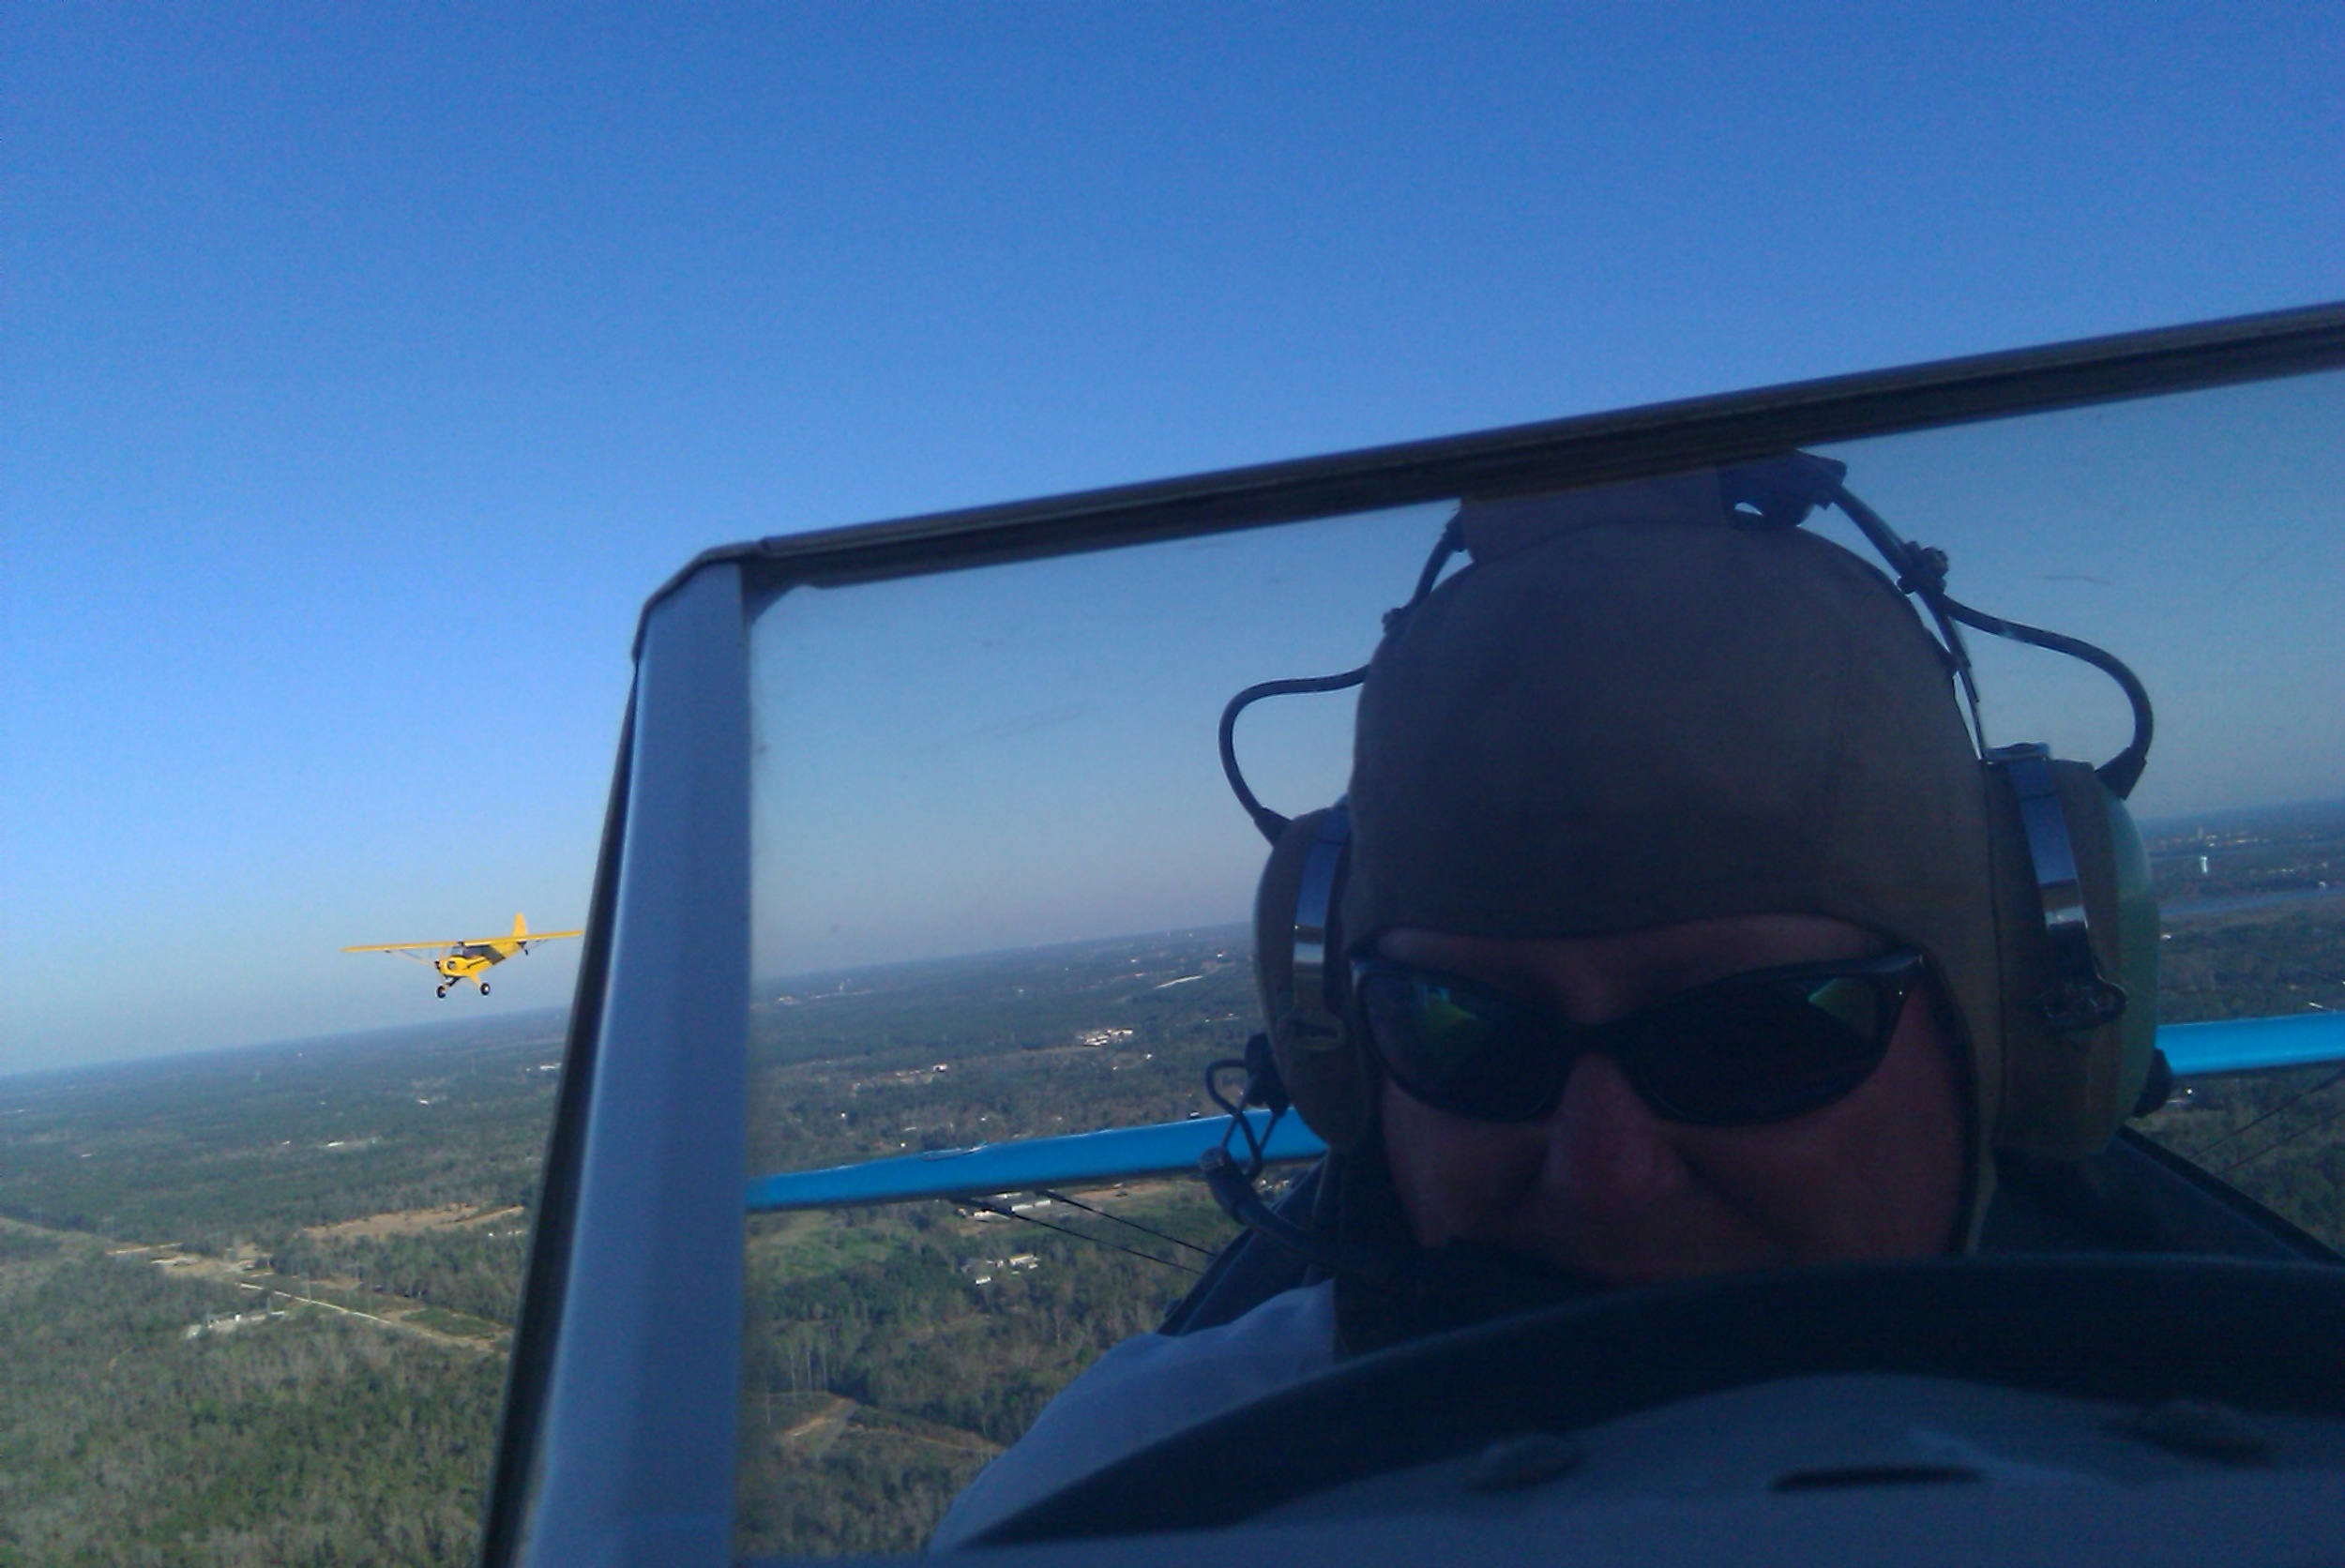 Danny in Stearman with Cub following.jpg